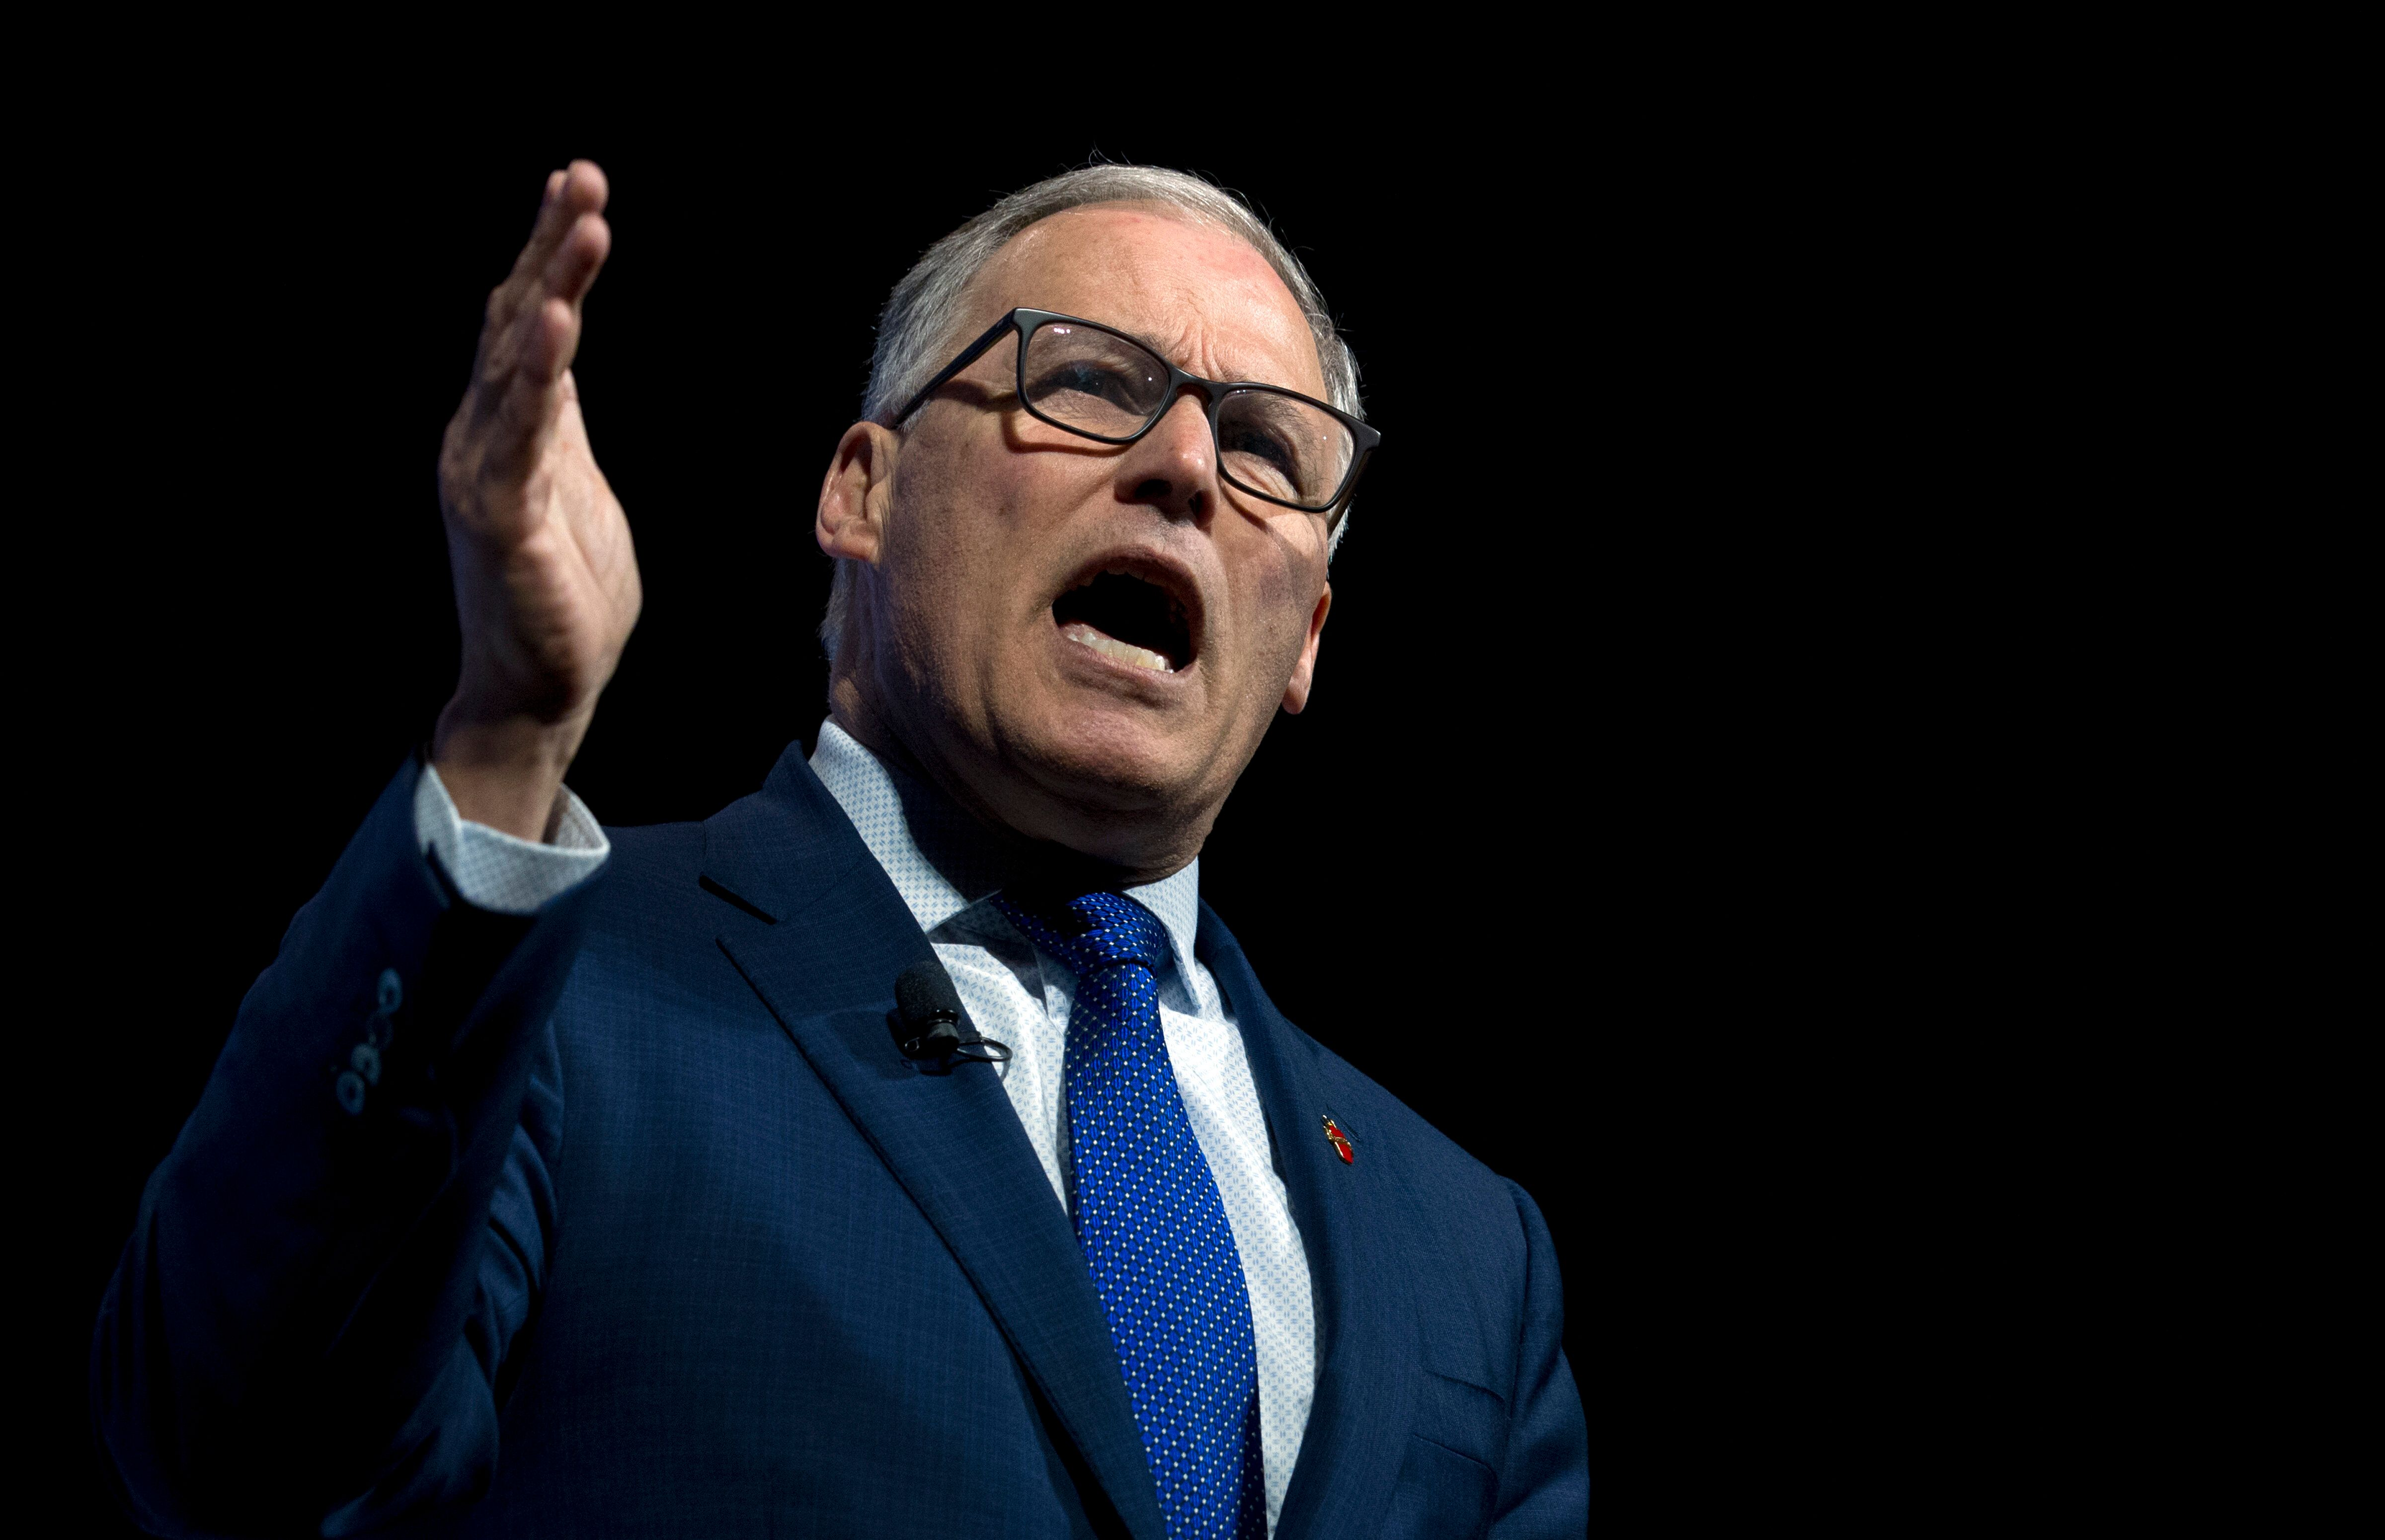 Democratic presidential candidate Washington Gov. Jay Inslee, speaks during the We the People Membership Summit, featuring the 2020 Democratic presidential candidates, at the Warner Theater, in Washington, Monday, April 1, 2019. (AP Photo/Jose Luis Magana)